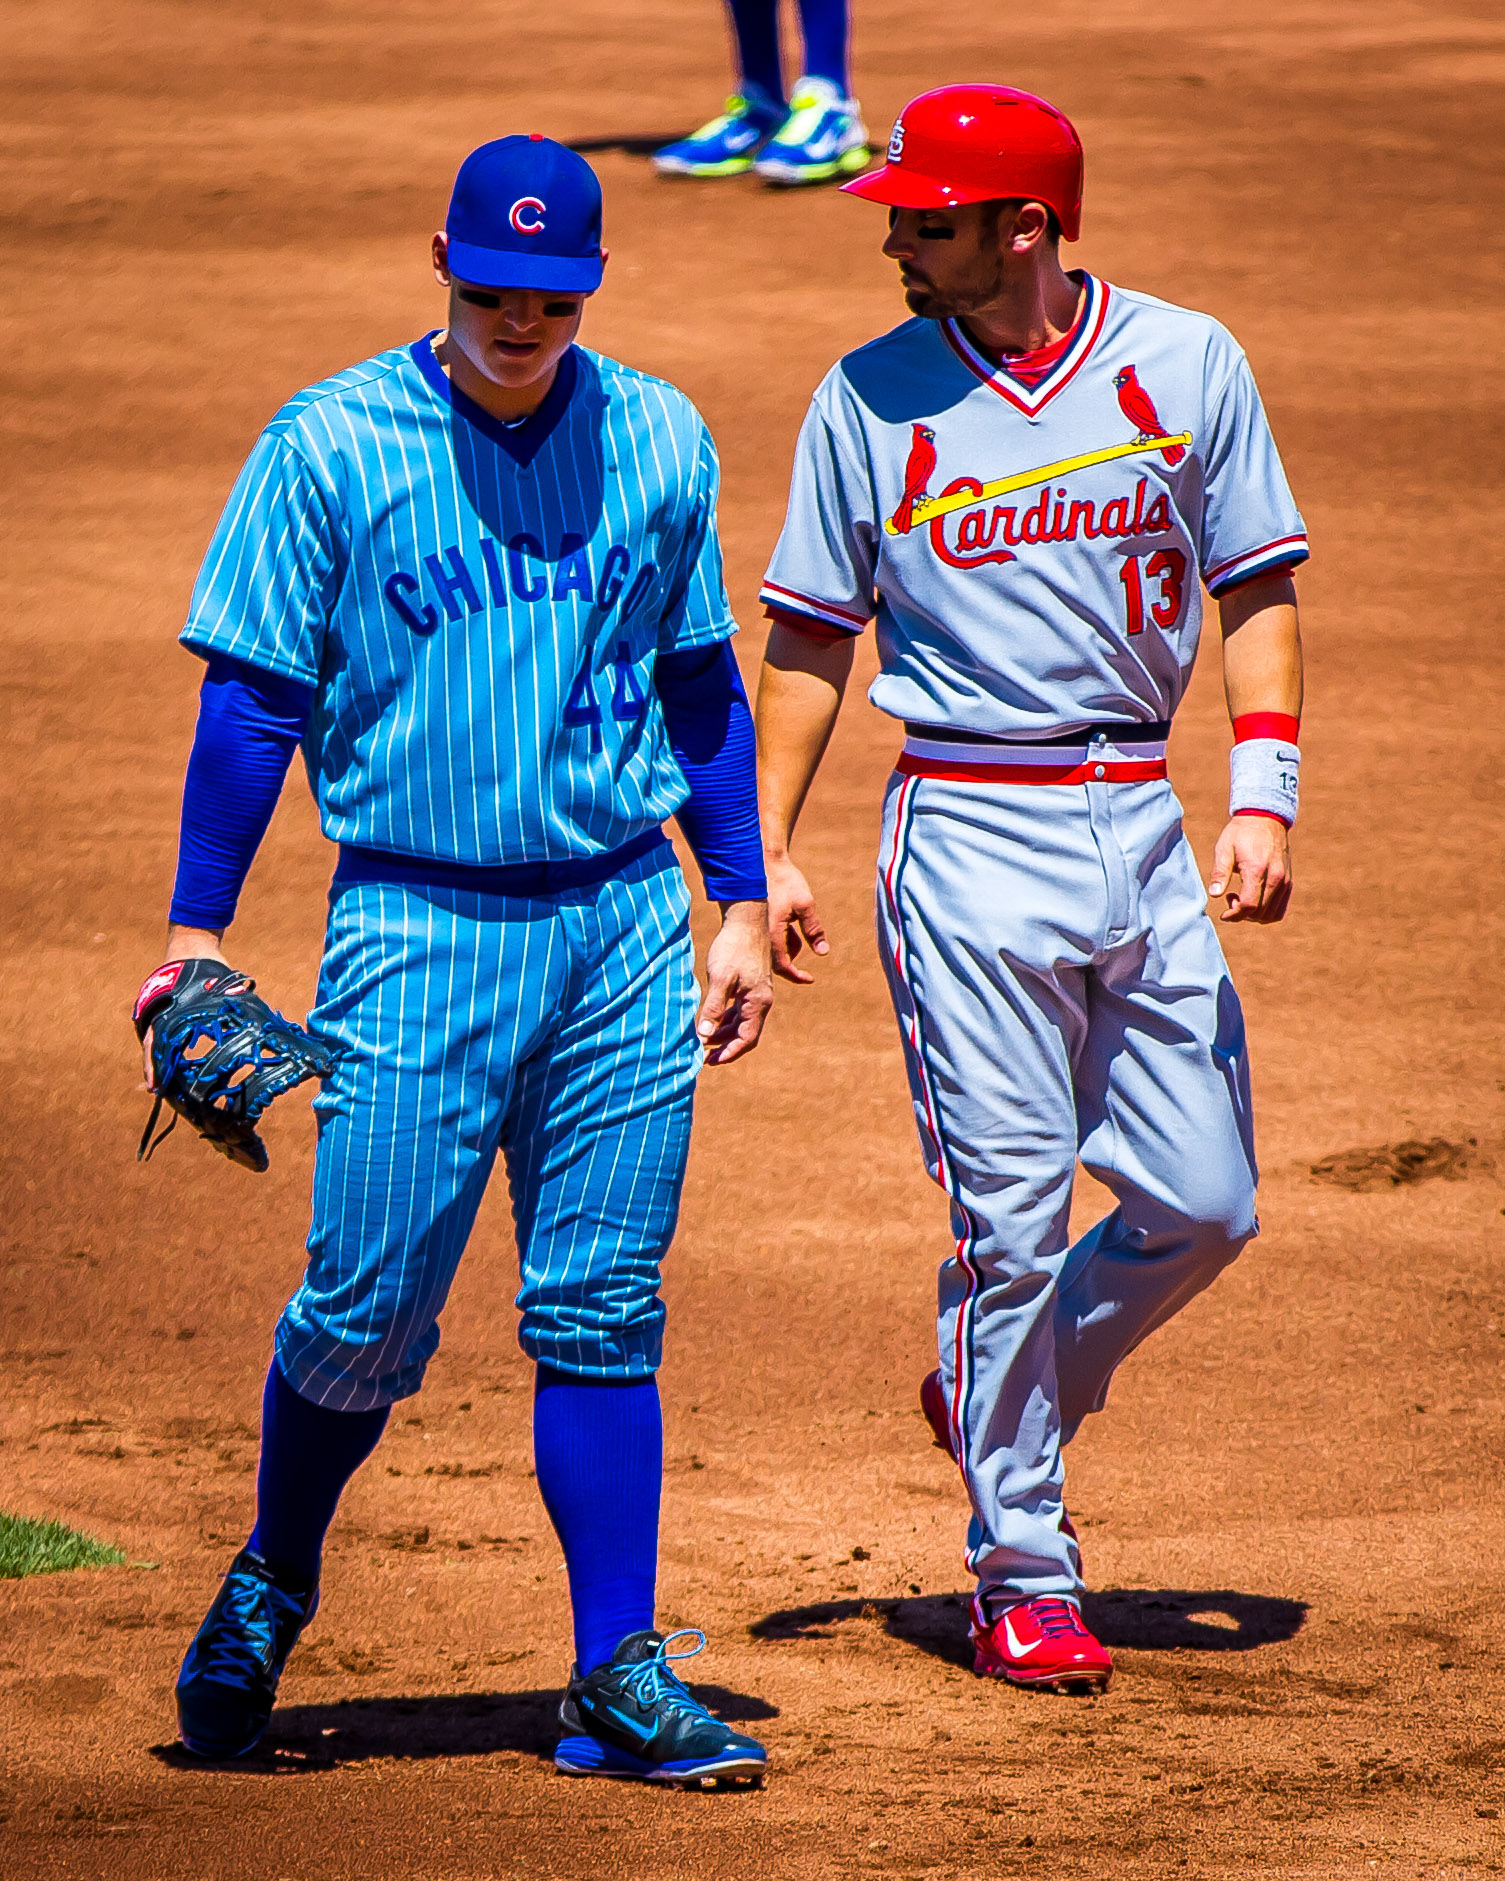 Rizzo and Carpenter